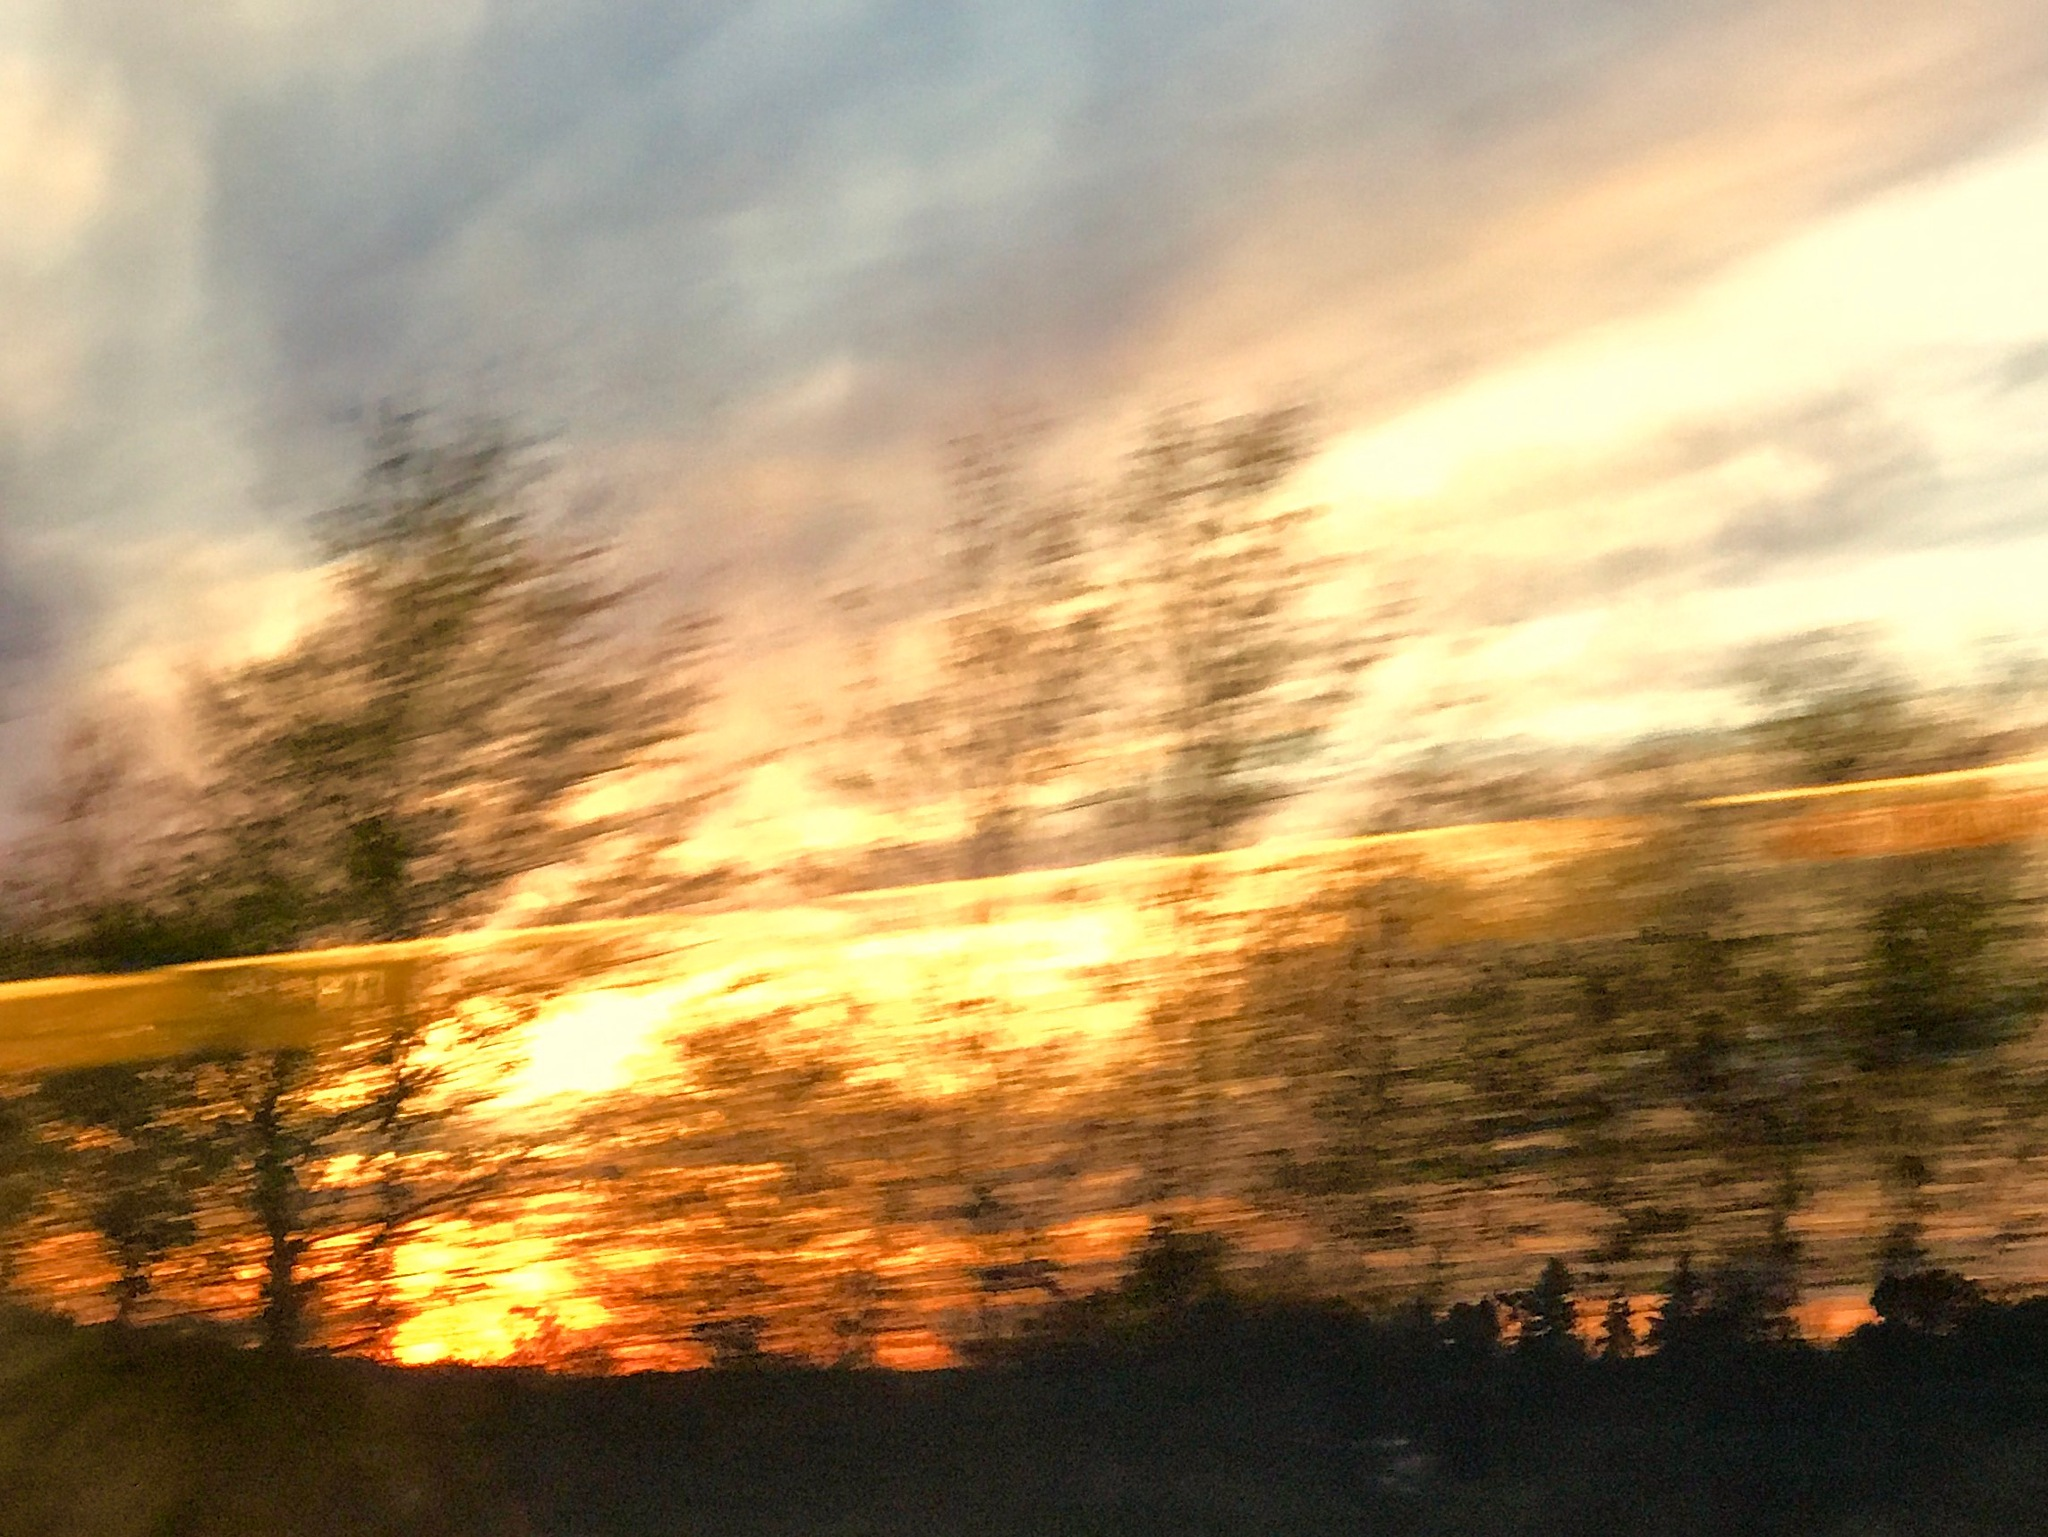 Sunset in motion  by gozar59